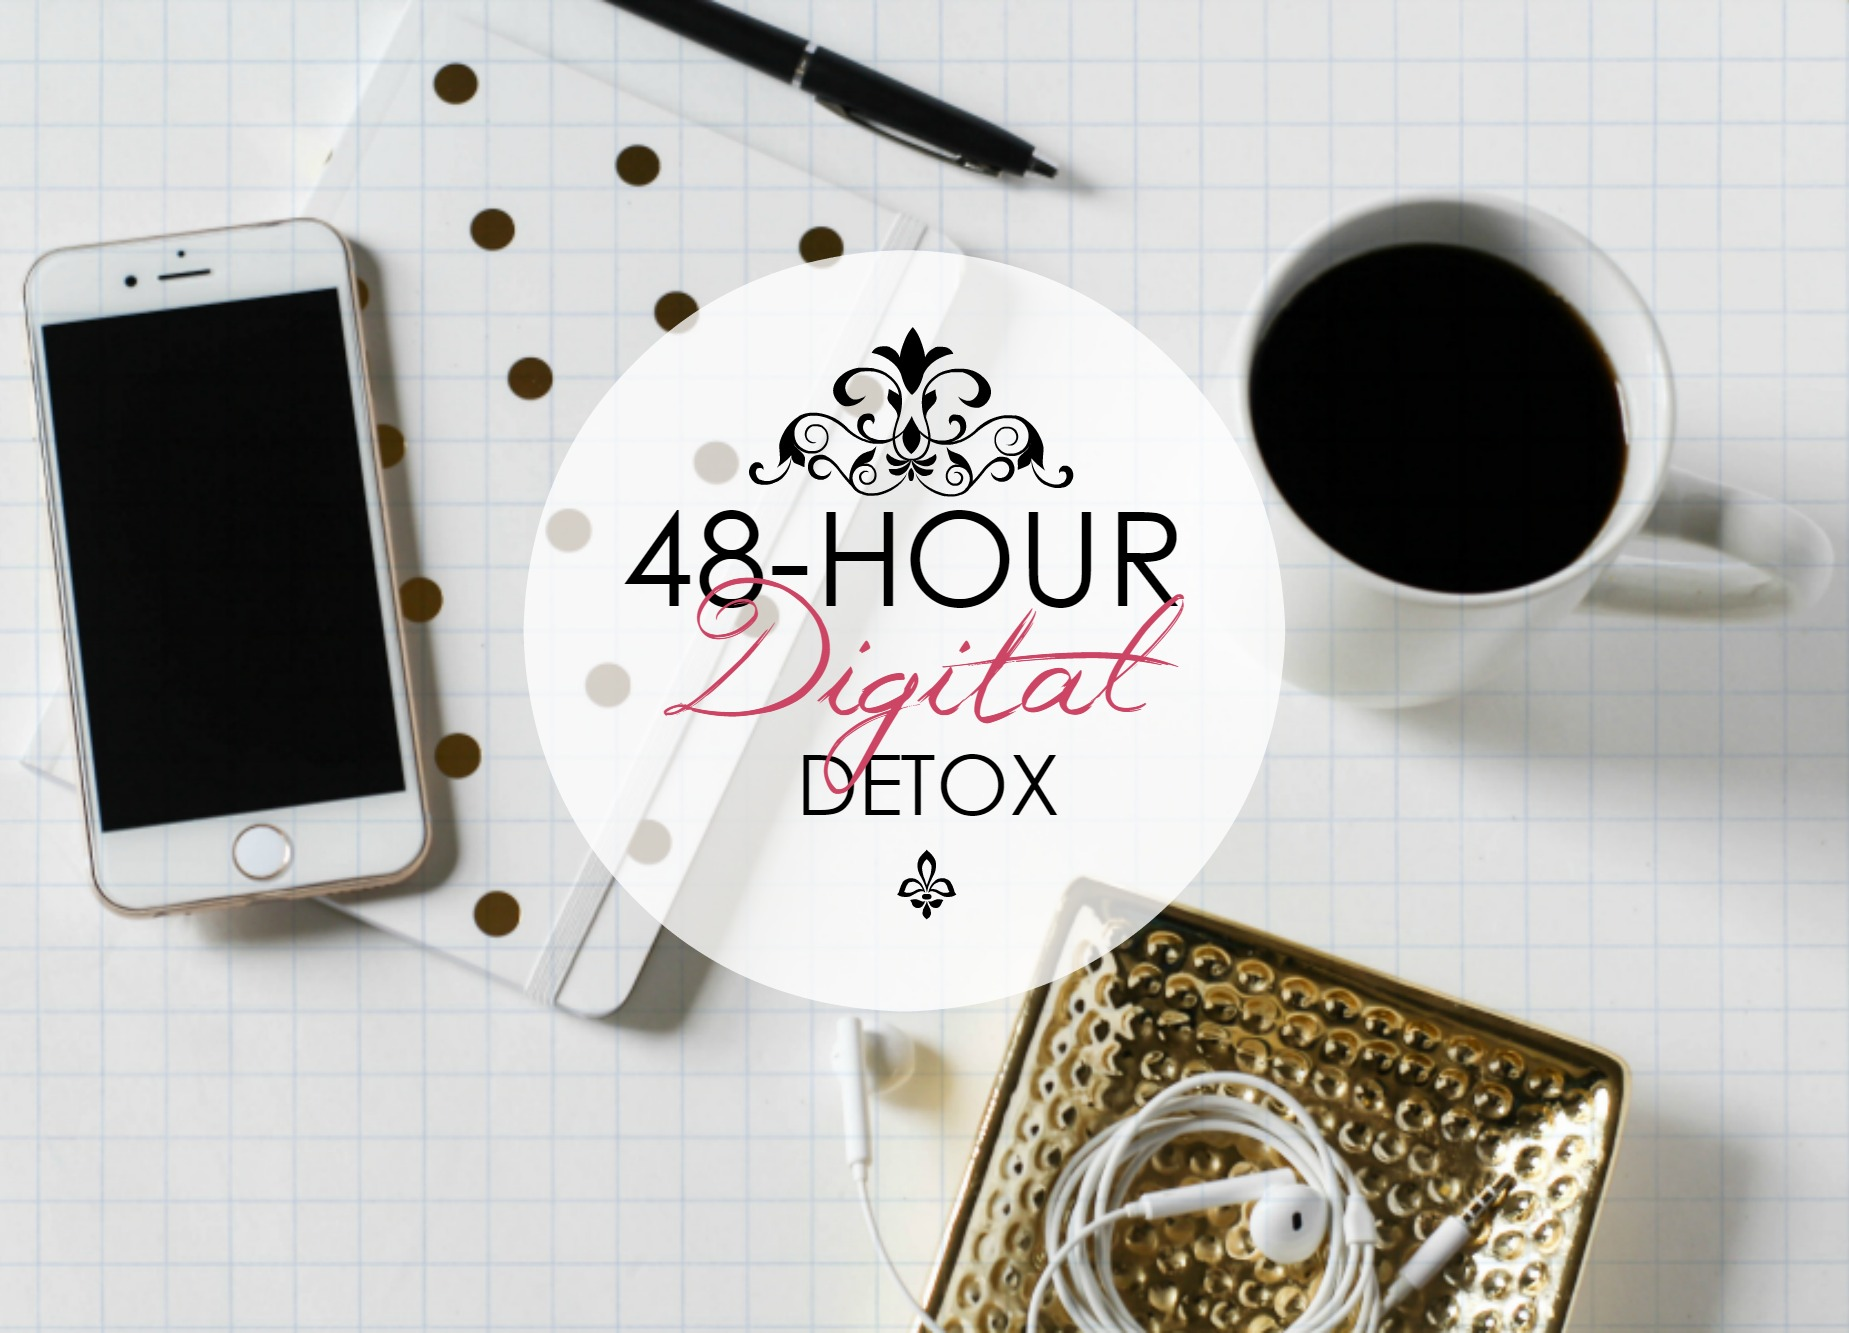 A two-day digital detox! Could you do it? Disconnect and relax!